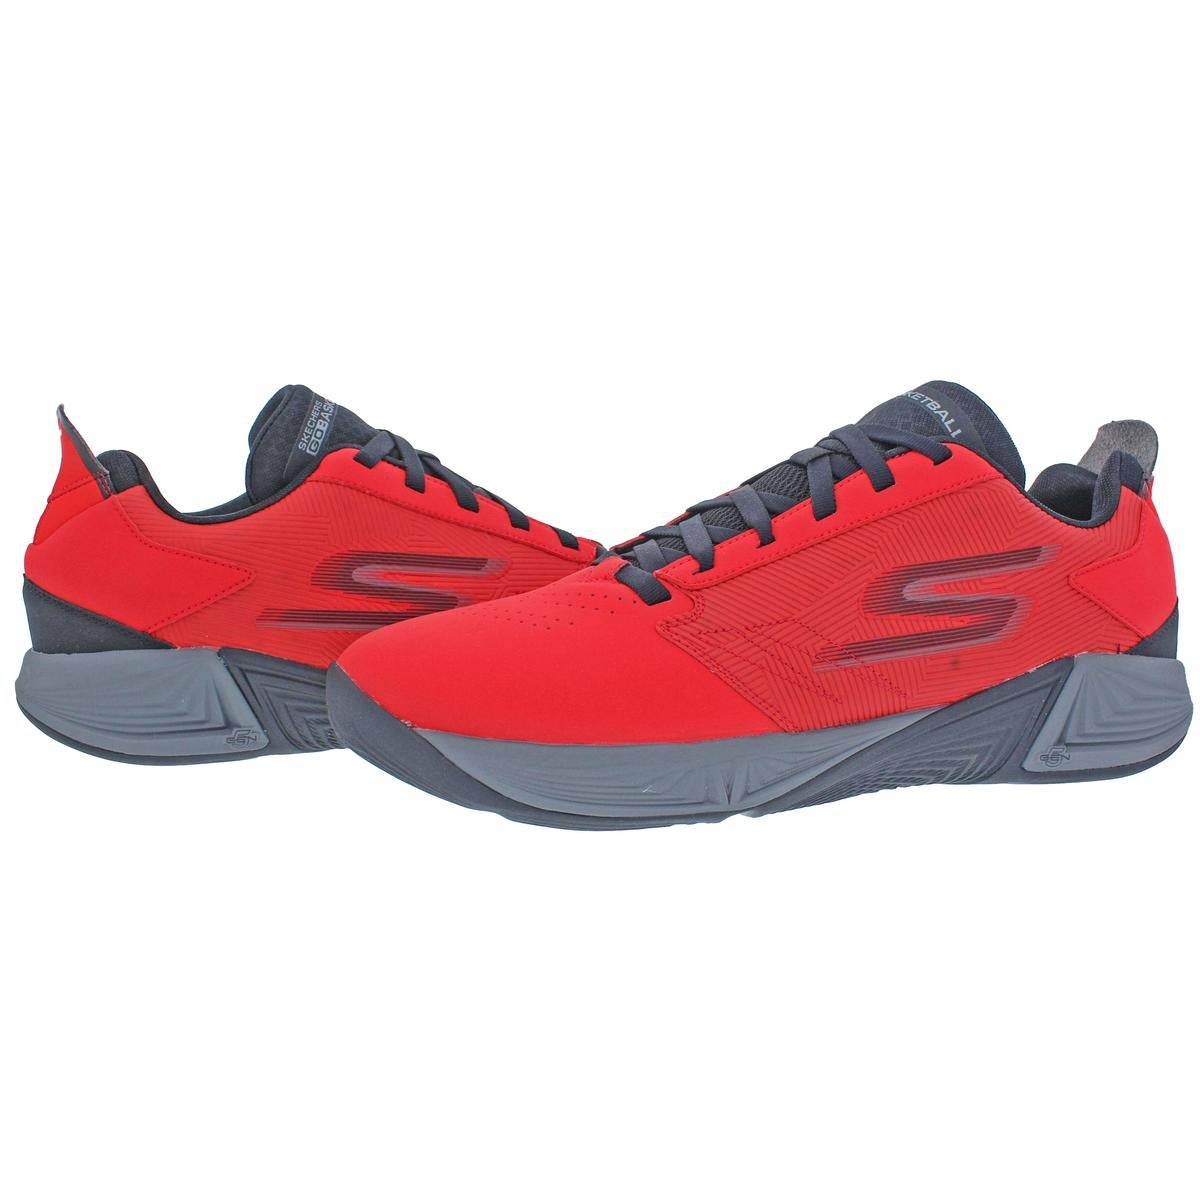 Skechers Torch LT Men's Synthetic Low Top Basketball Shoes Red Size 13 13 medium (d)